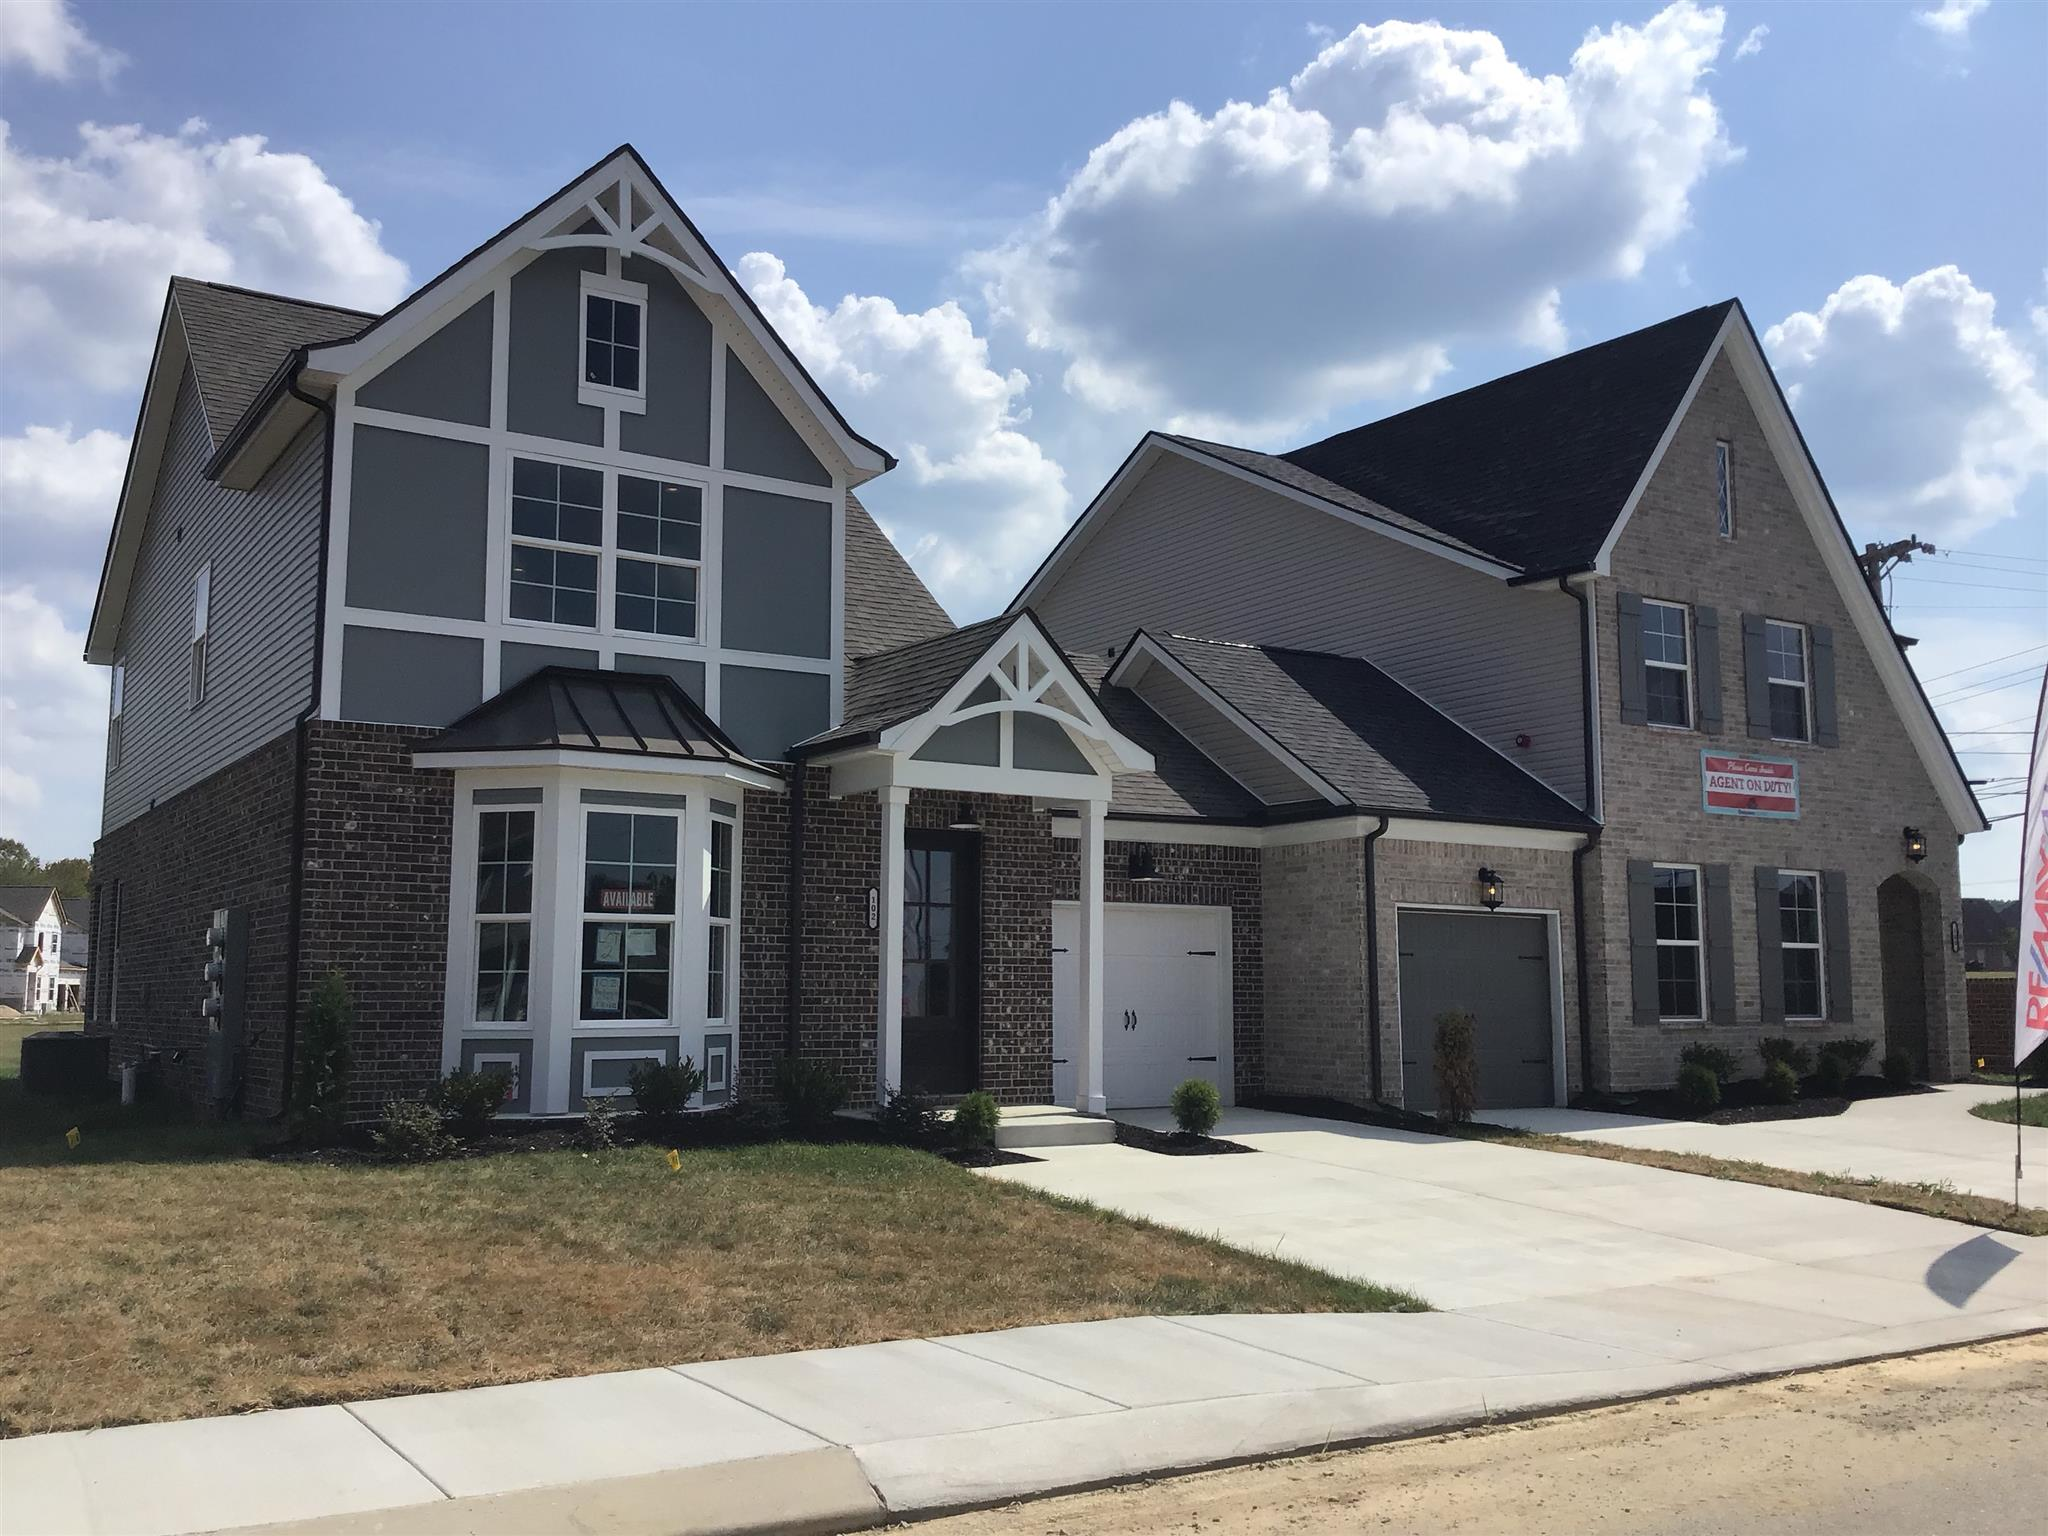 103 Bellagio Villas Dr Lot 2, Spring Hill, TN 37174 - Spring Hill, TN real estate listing